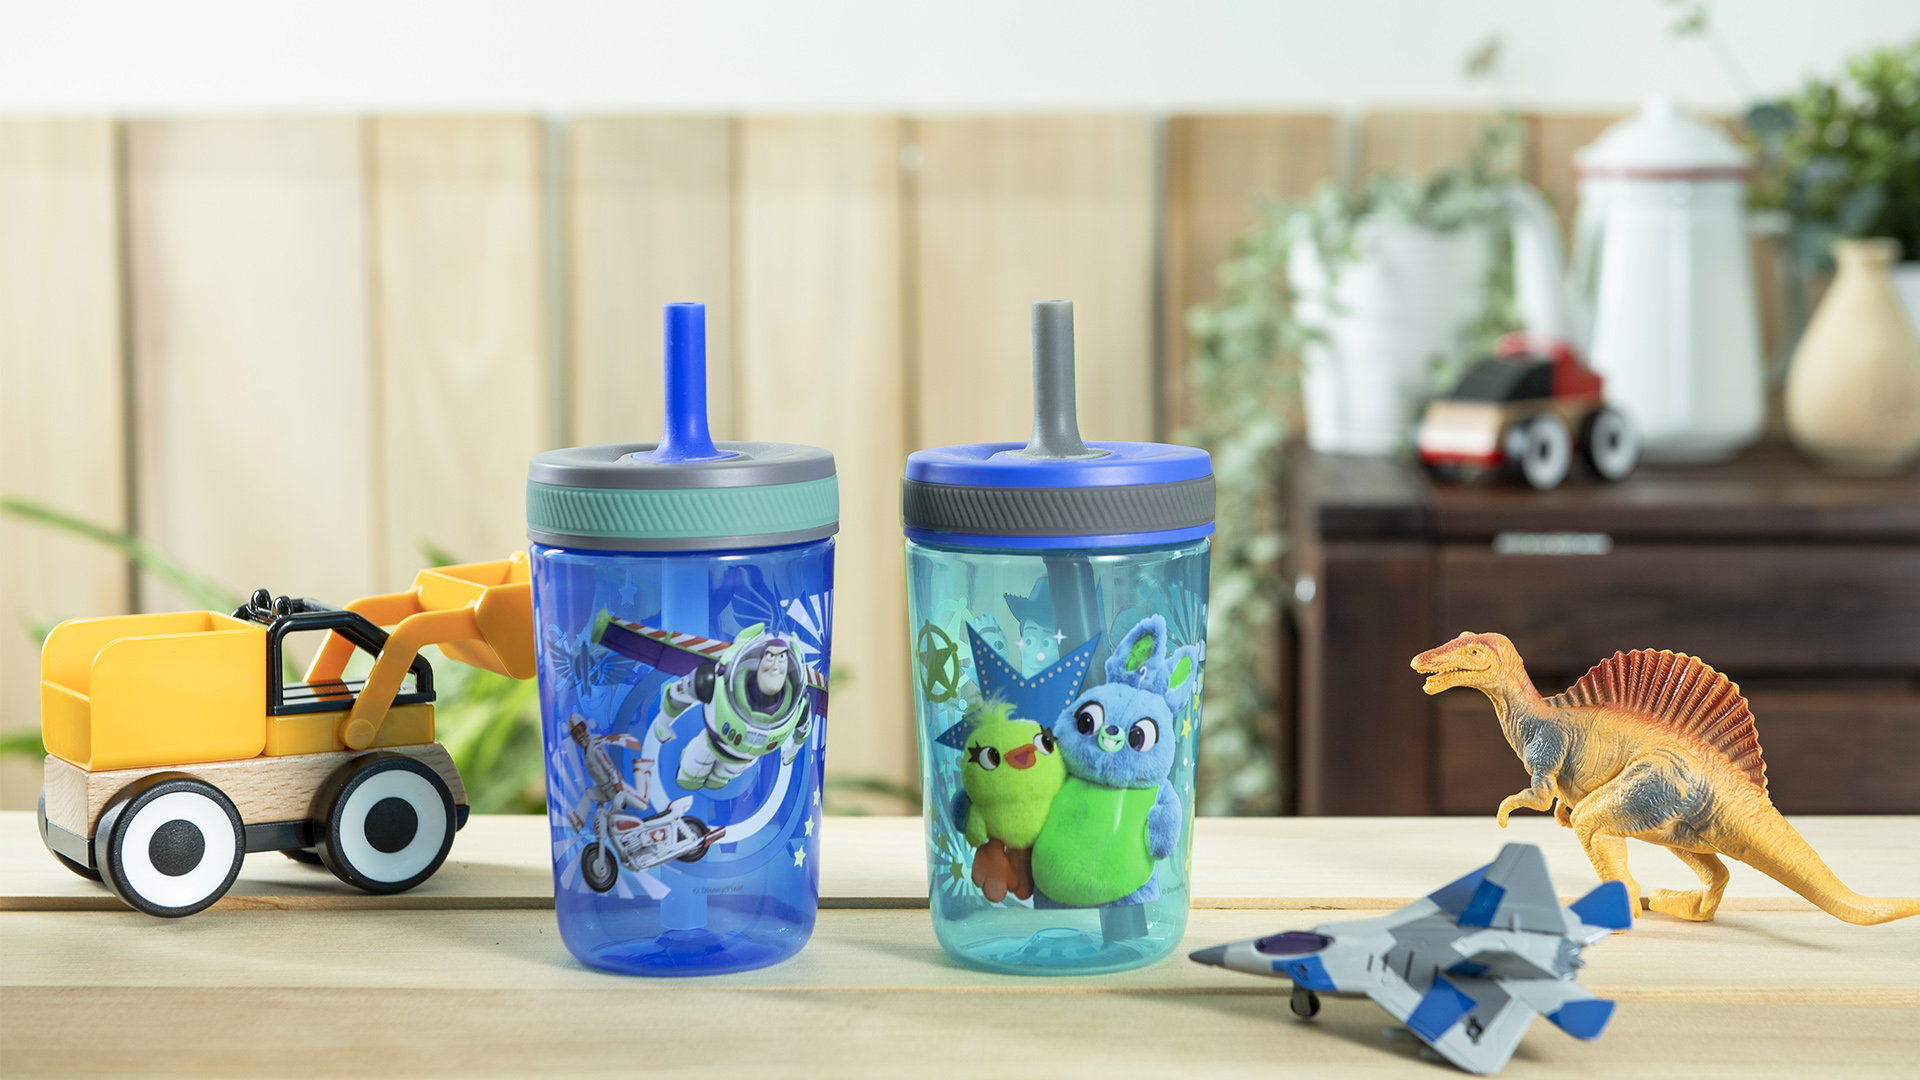 Disney and Pixar 15  ounce Plastic Tumbler with Lid and Straw, Buzz Lightyear and Friends, 2-piece set slideshow image 6